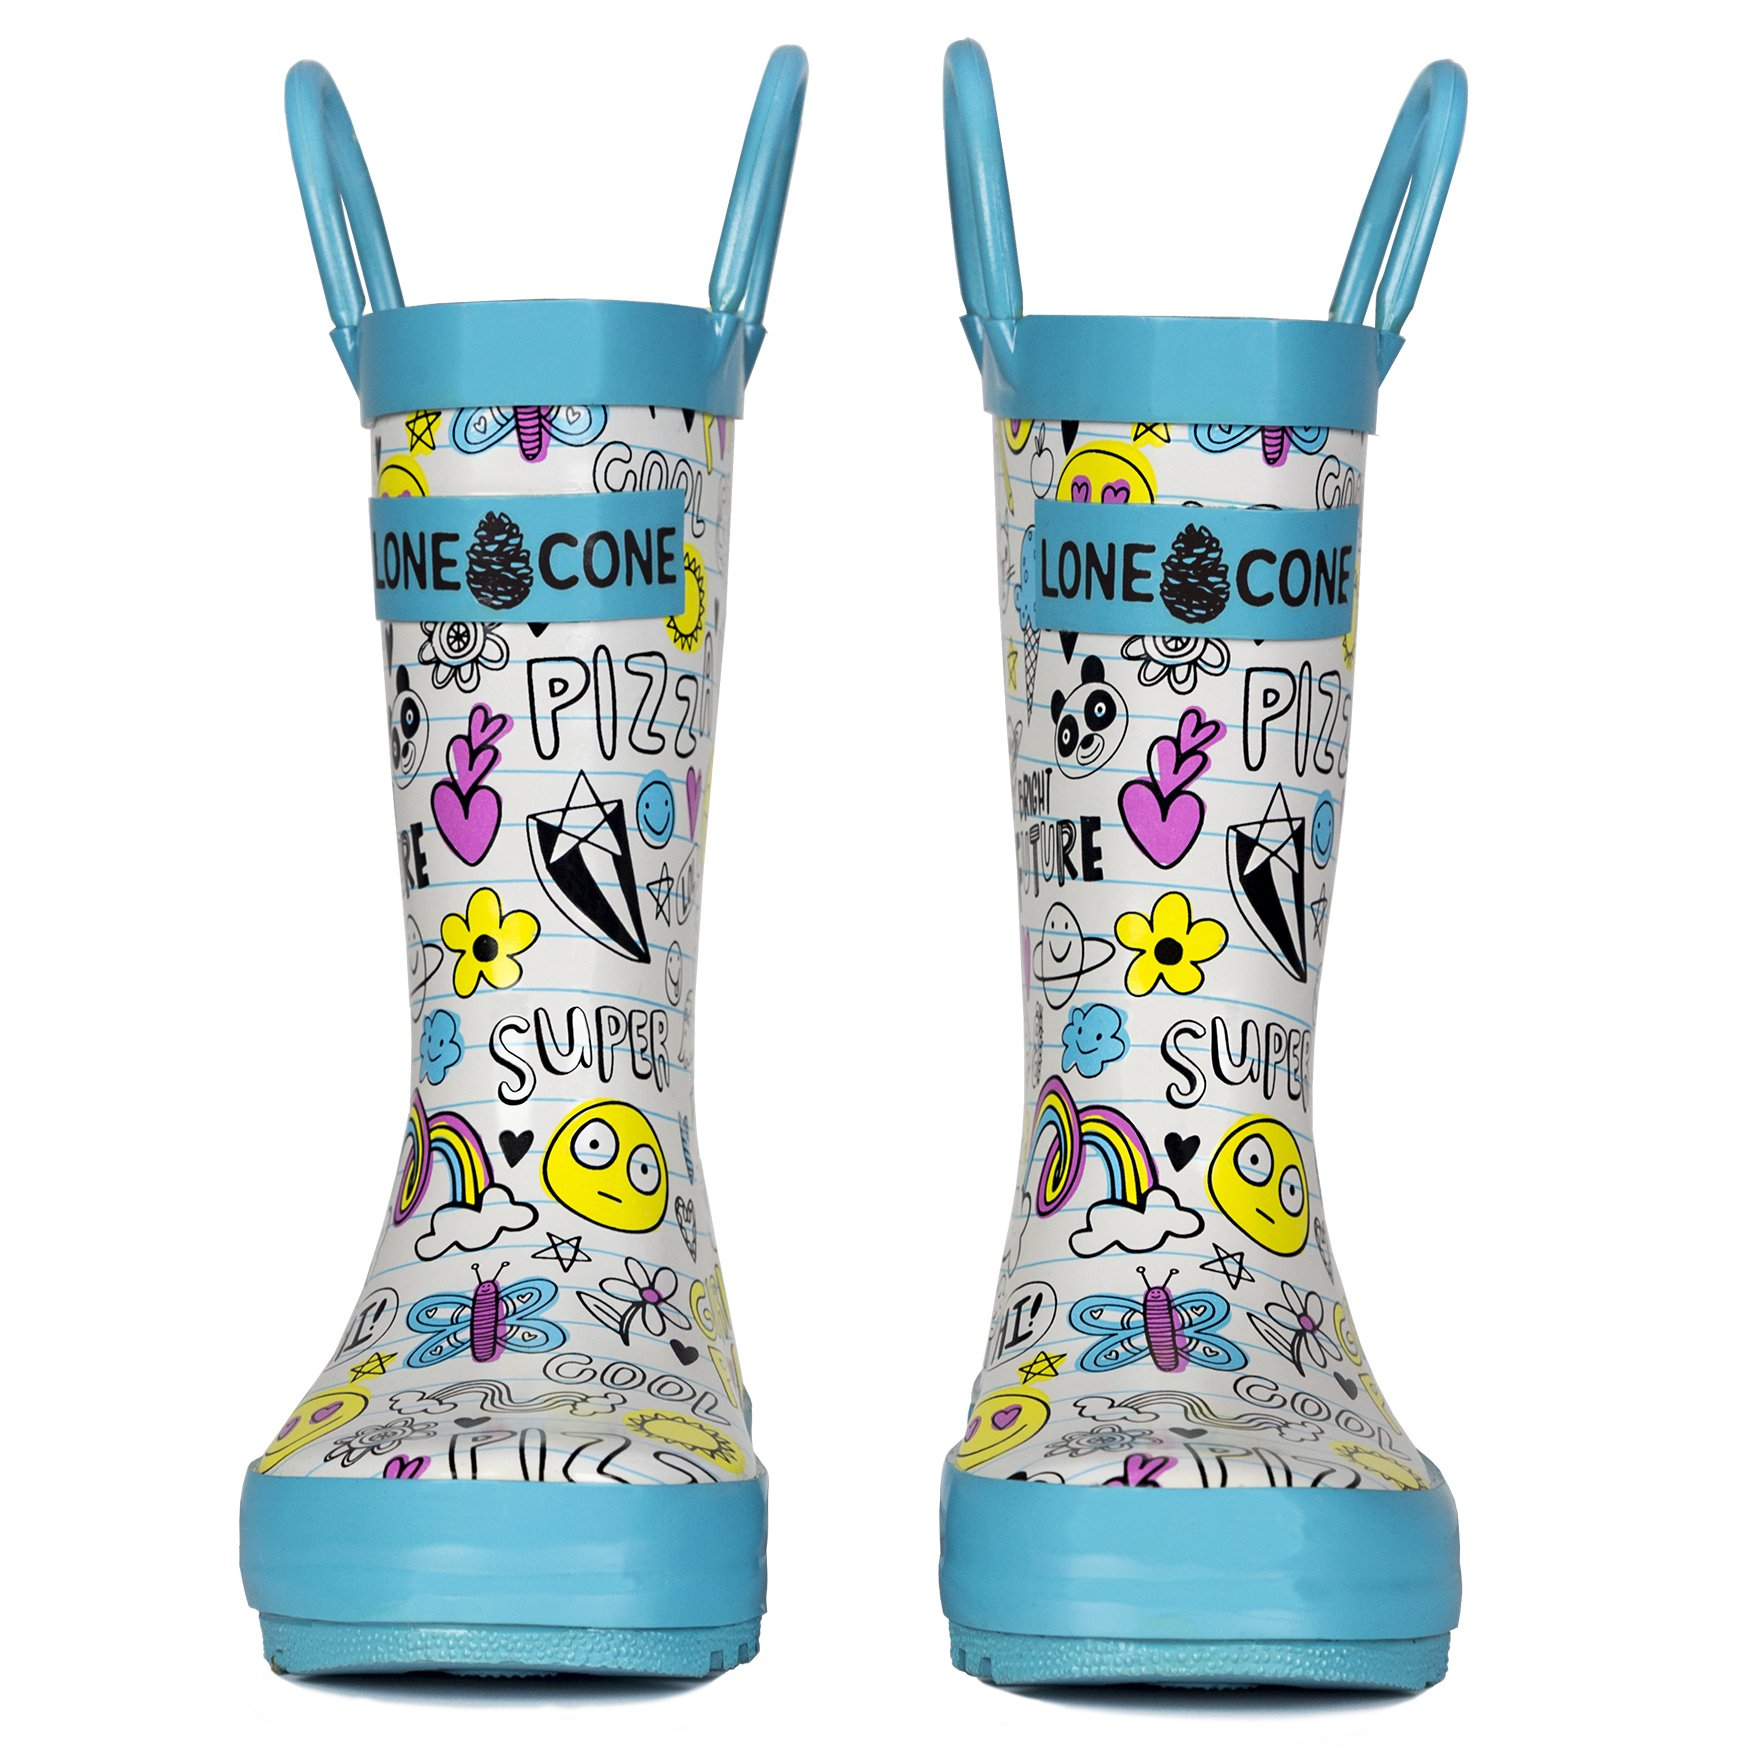 LONECONE Children's Waterproof Rubber Rain Boots in Fun Patterns with Easy-On Handles Simple for Kids, Oodles of Doodles, Toddler 8 by LONECONE (Image #4)